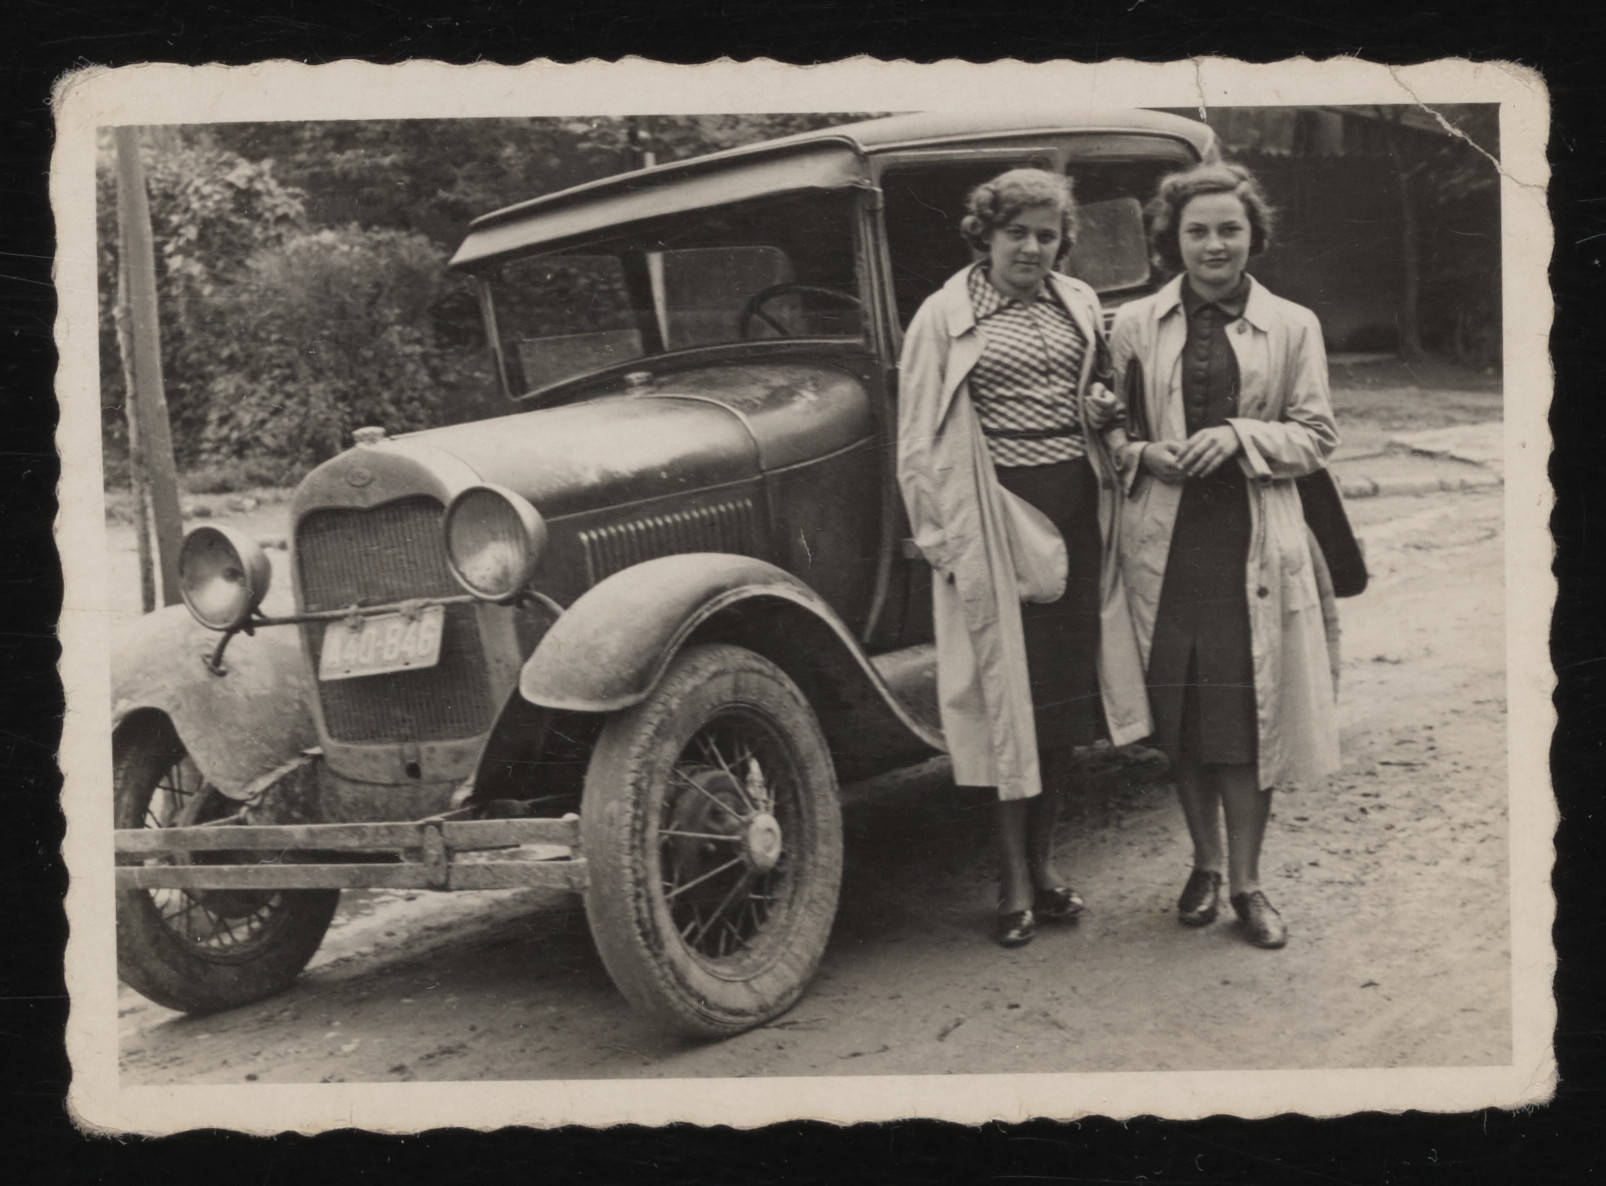 Two young Jewish women pose next to a car in the resort town of Truskawiec.    Pictured are Gina Tabaczynska (right) and her cousin, Ziuta Szczecinska. The cousins attended the same school in Warsaw.